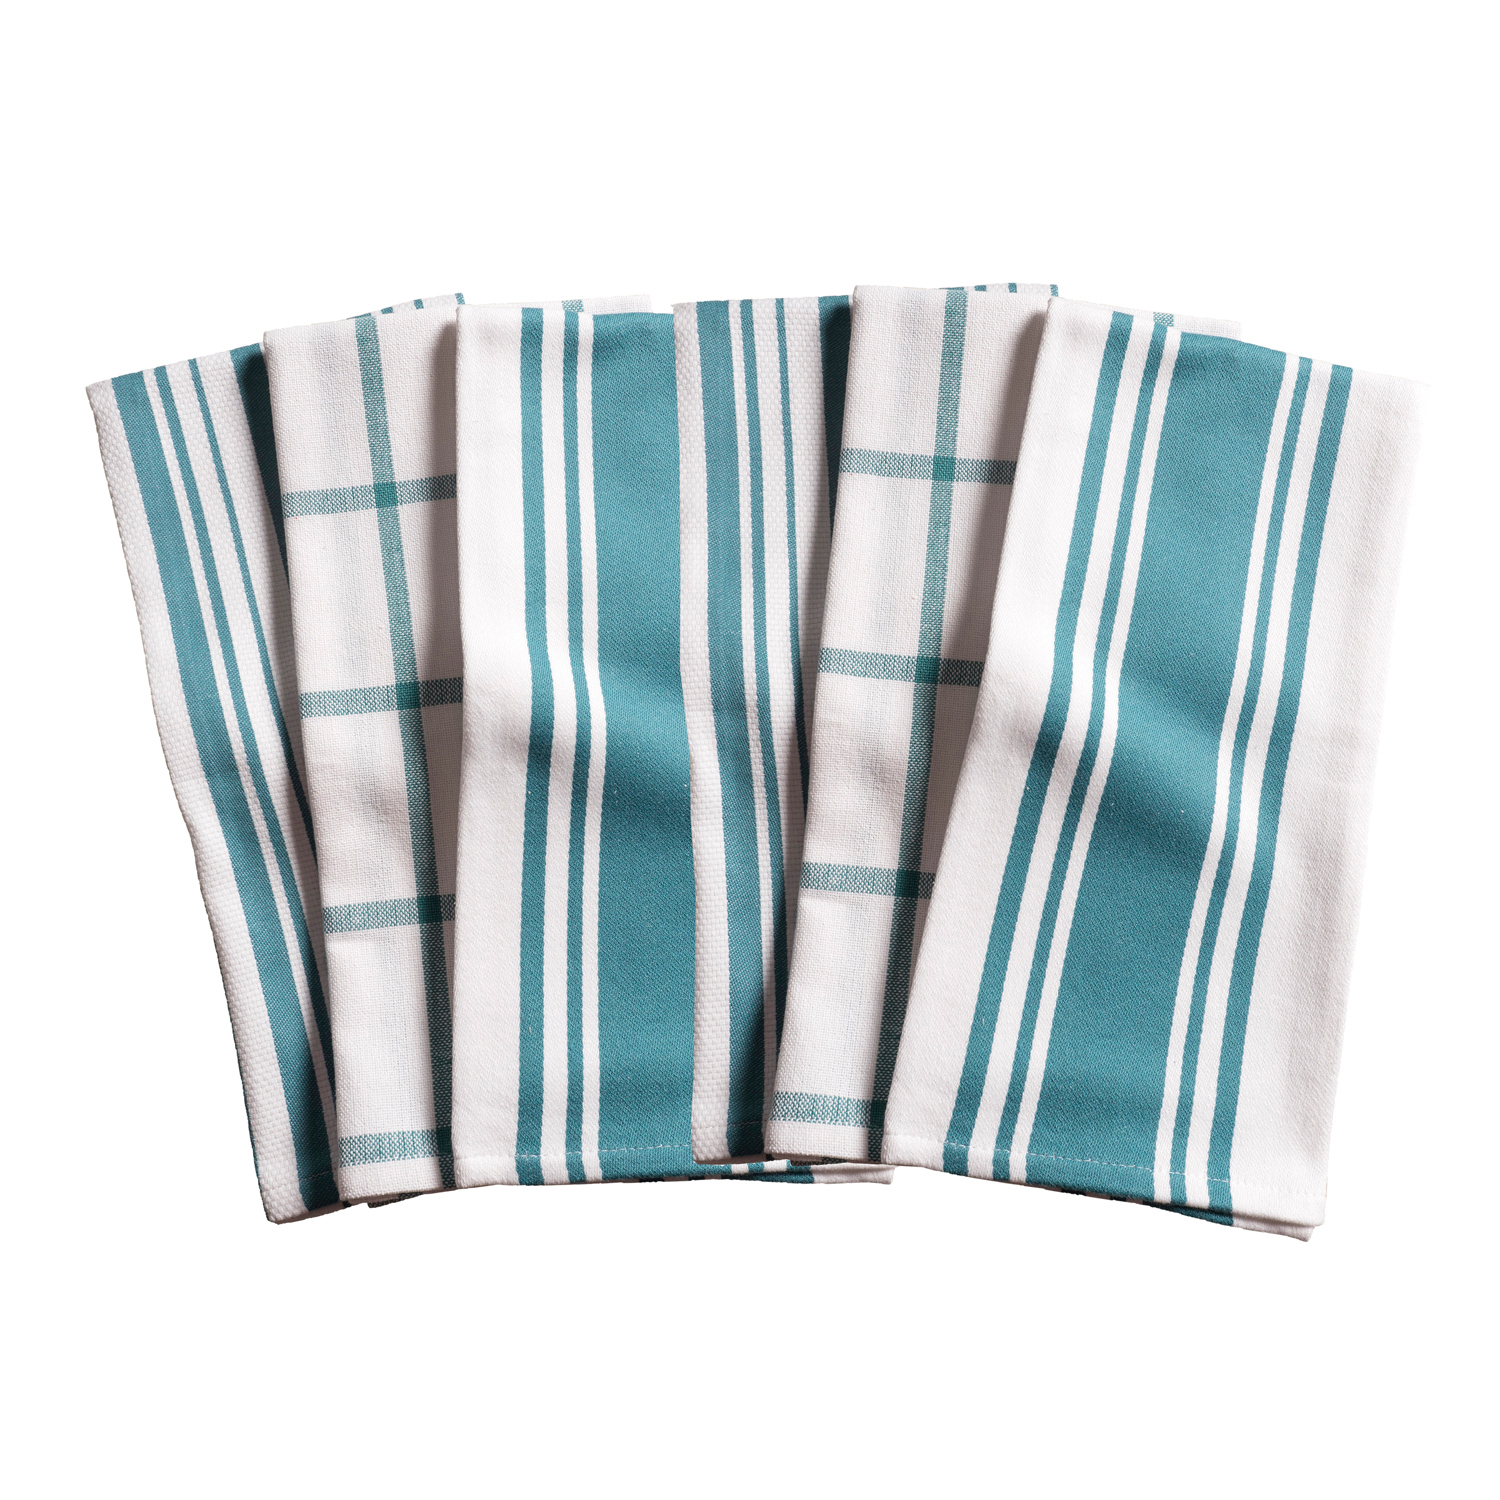 Teal All Purpose Kitchen Towels Set of 6